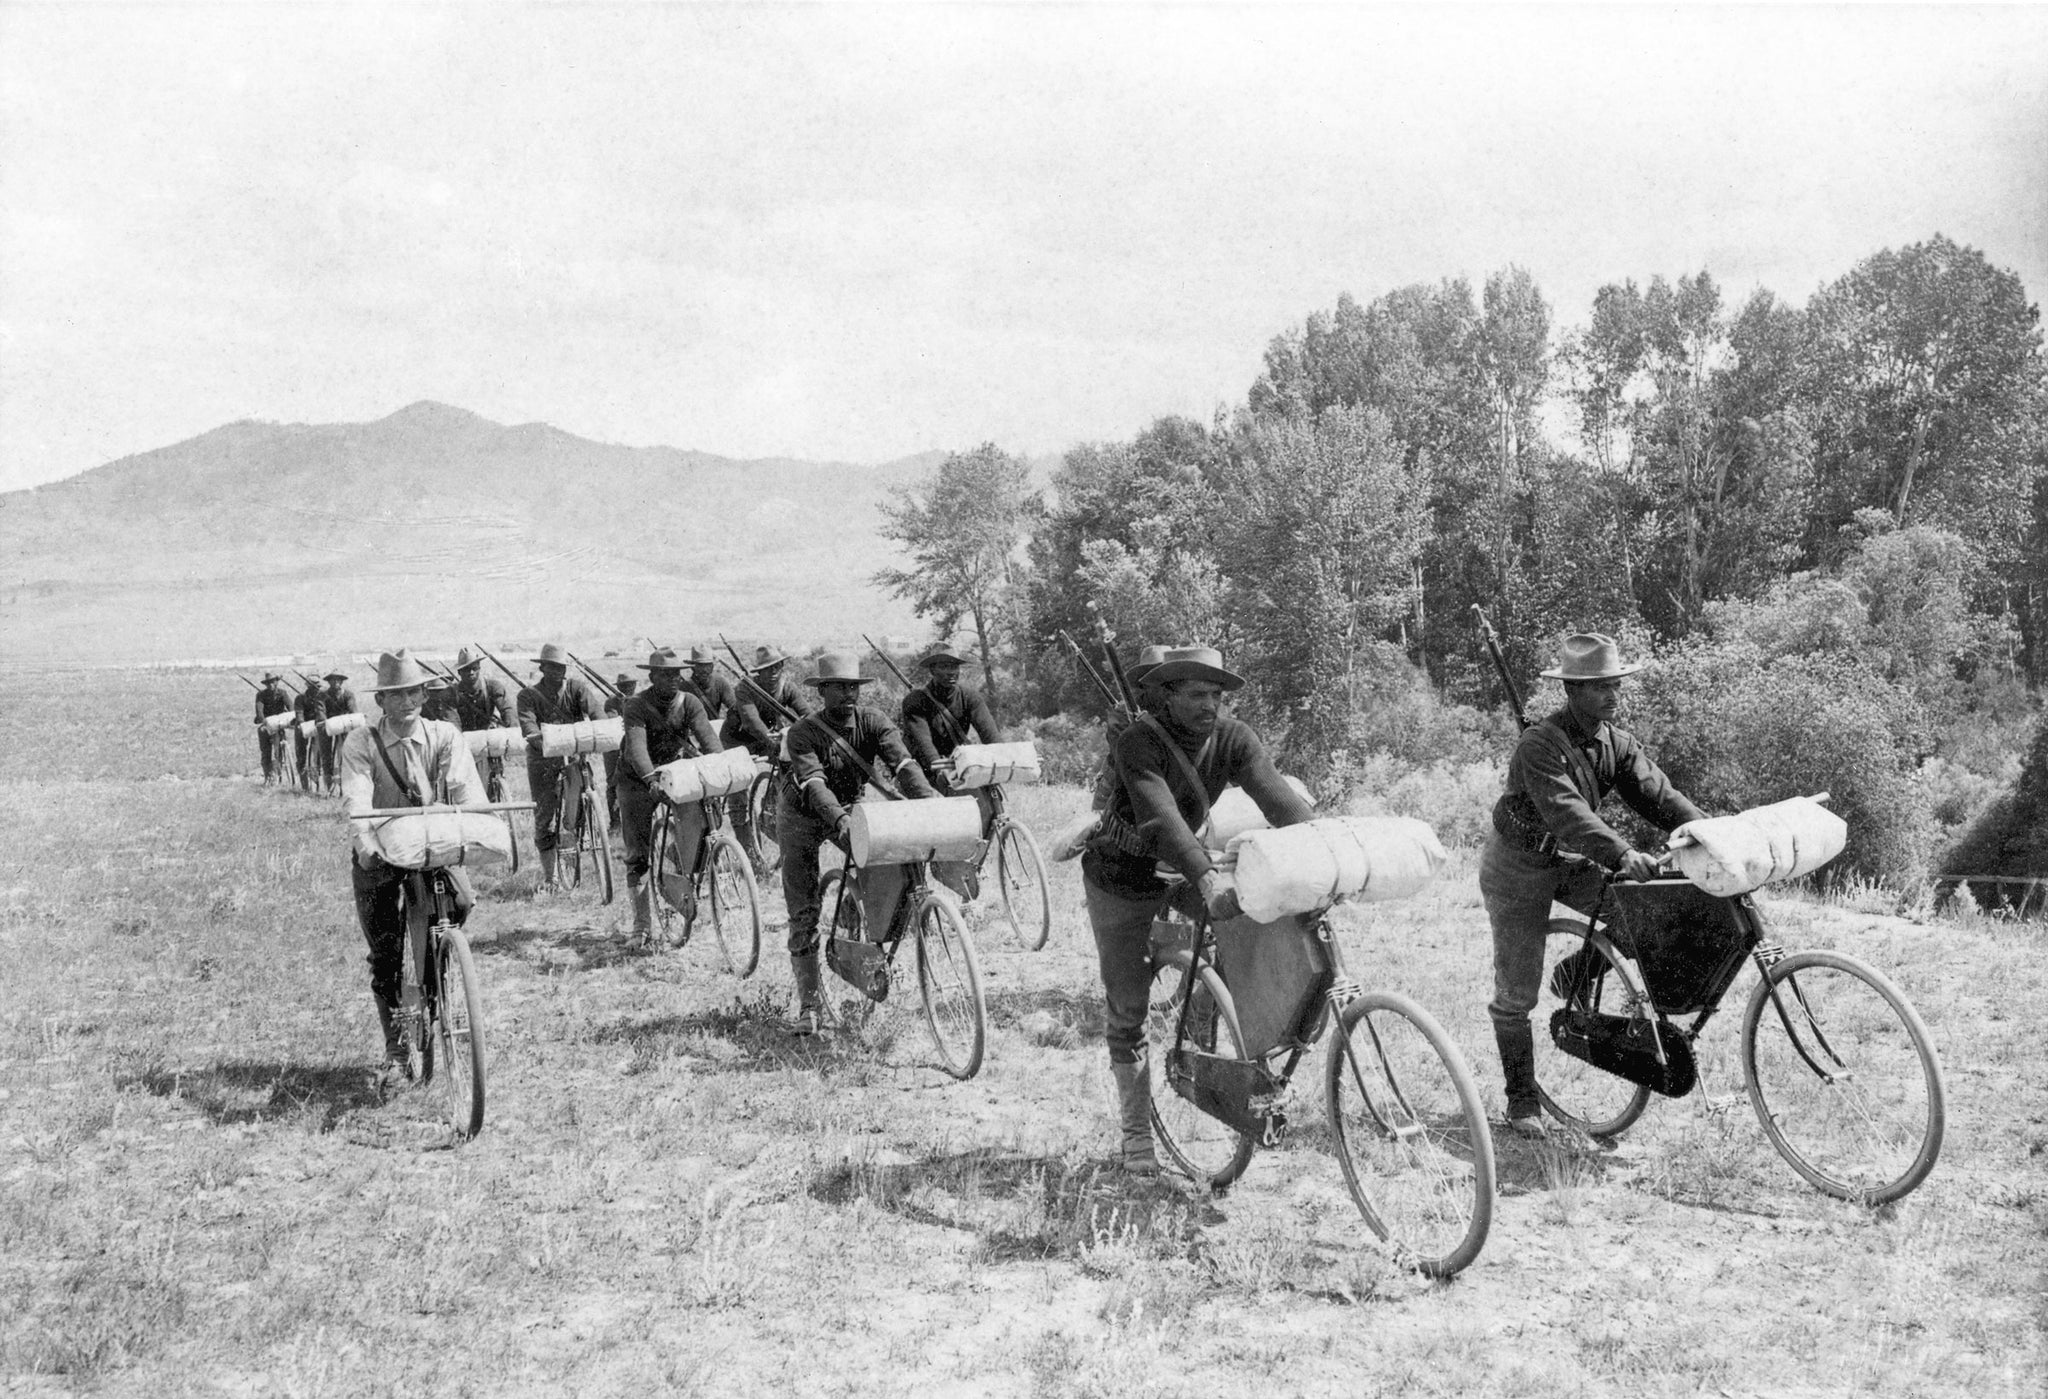 Members of the U.S. Army 25th Infantry Bicycle Corps stationed at Fort Missoula, 1897. Lt. James A. Moss is riding on the left beside the two rows of soldiers. -- Image 73-0031, Courtesy Mansfield Library Archives, University of Montana